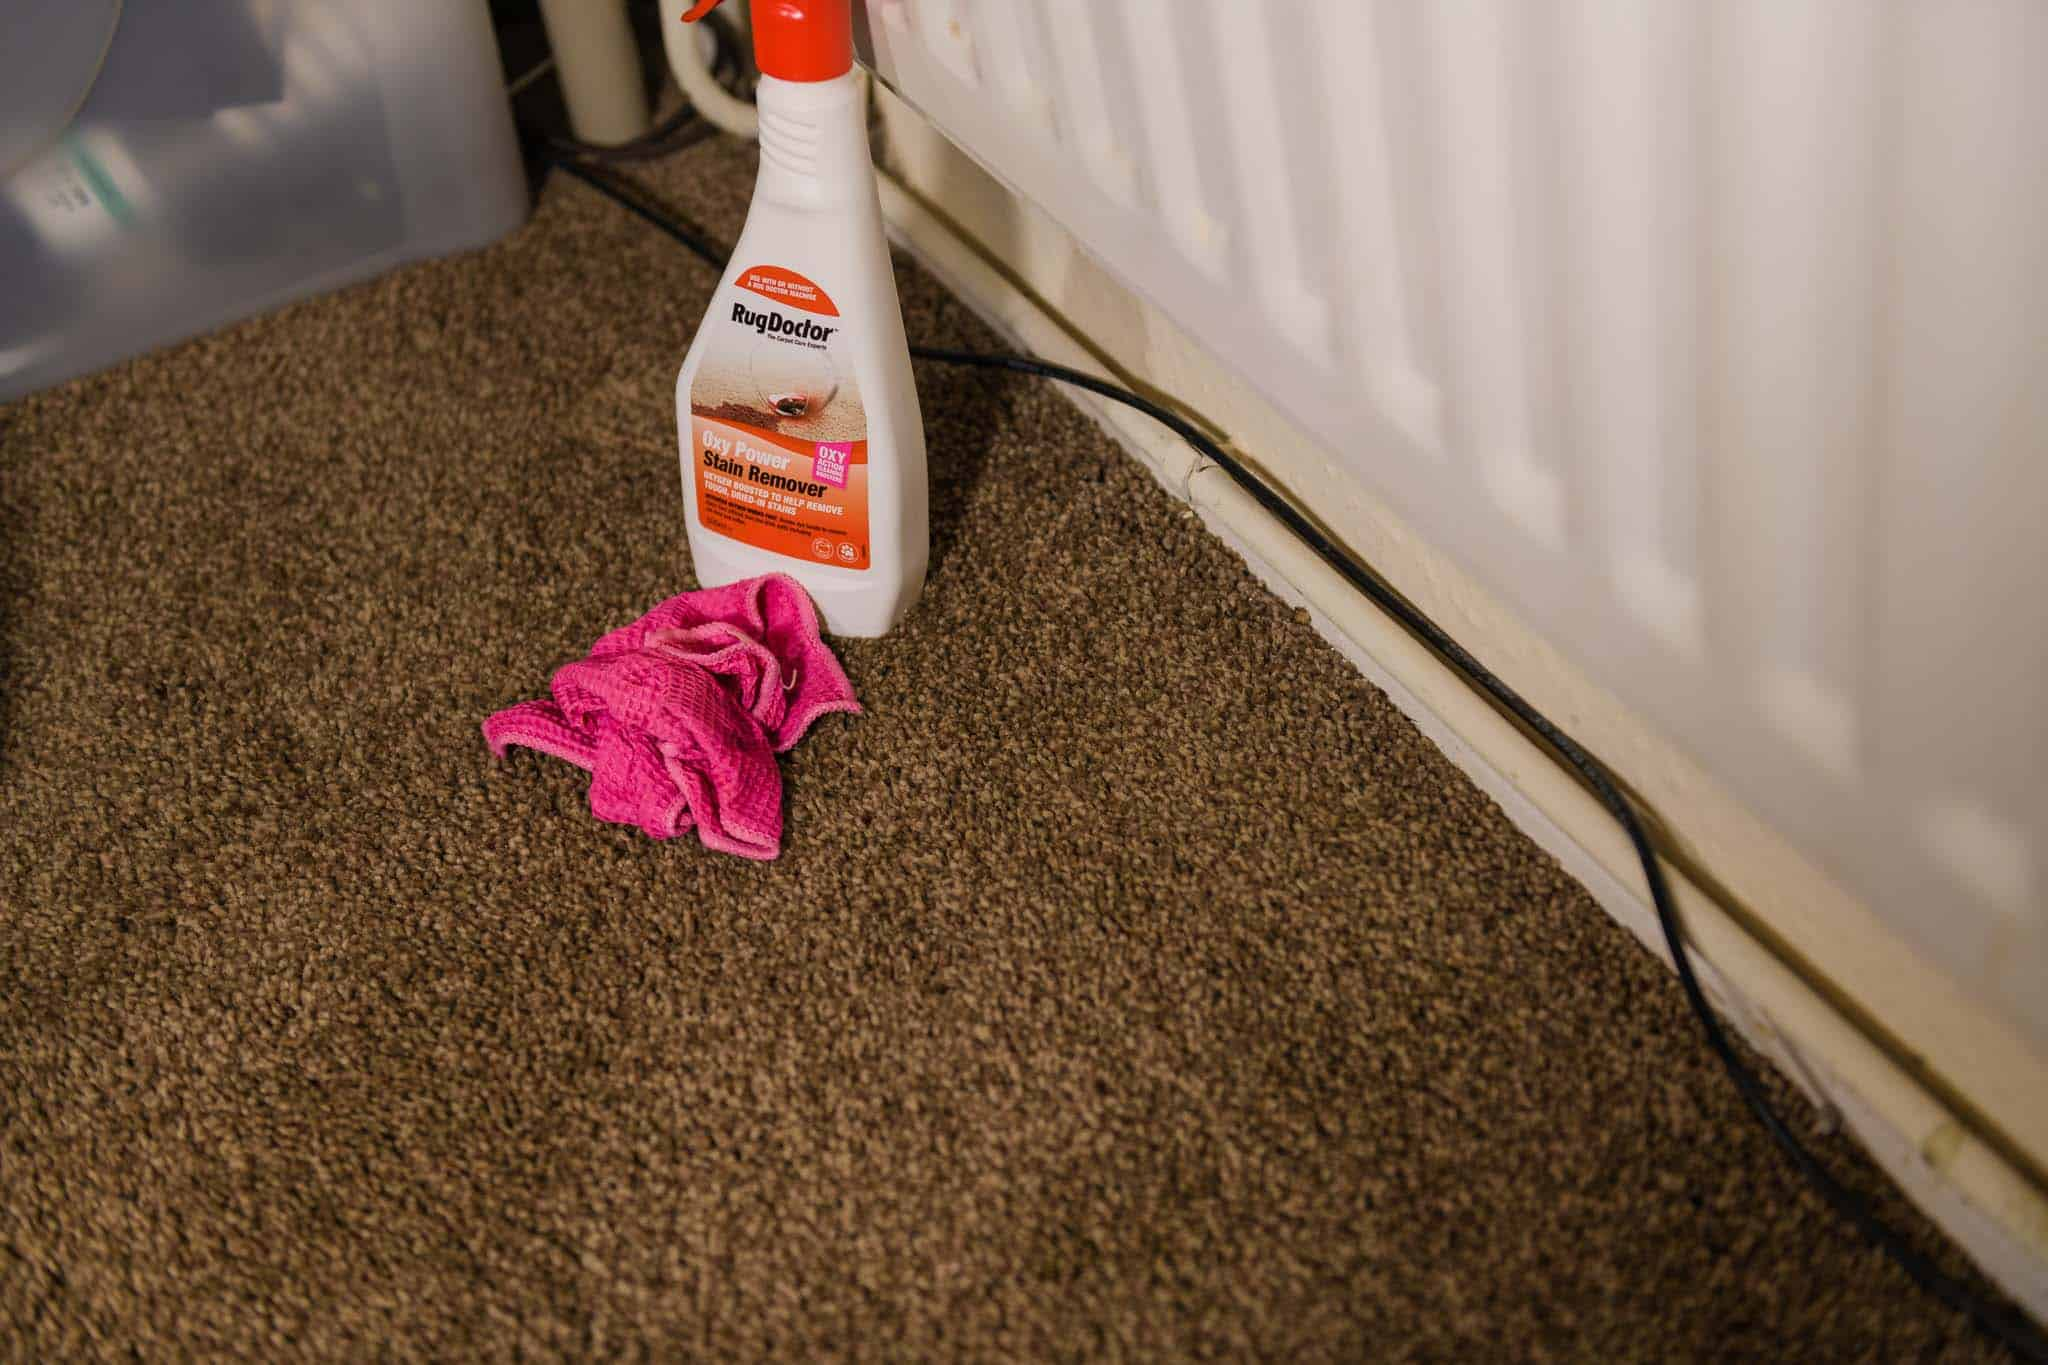 removing carpet stains with rug doctor stain remover